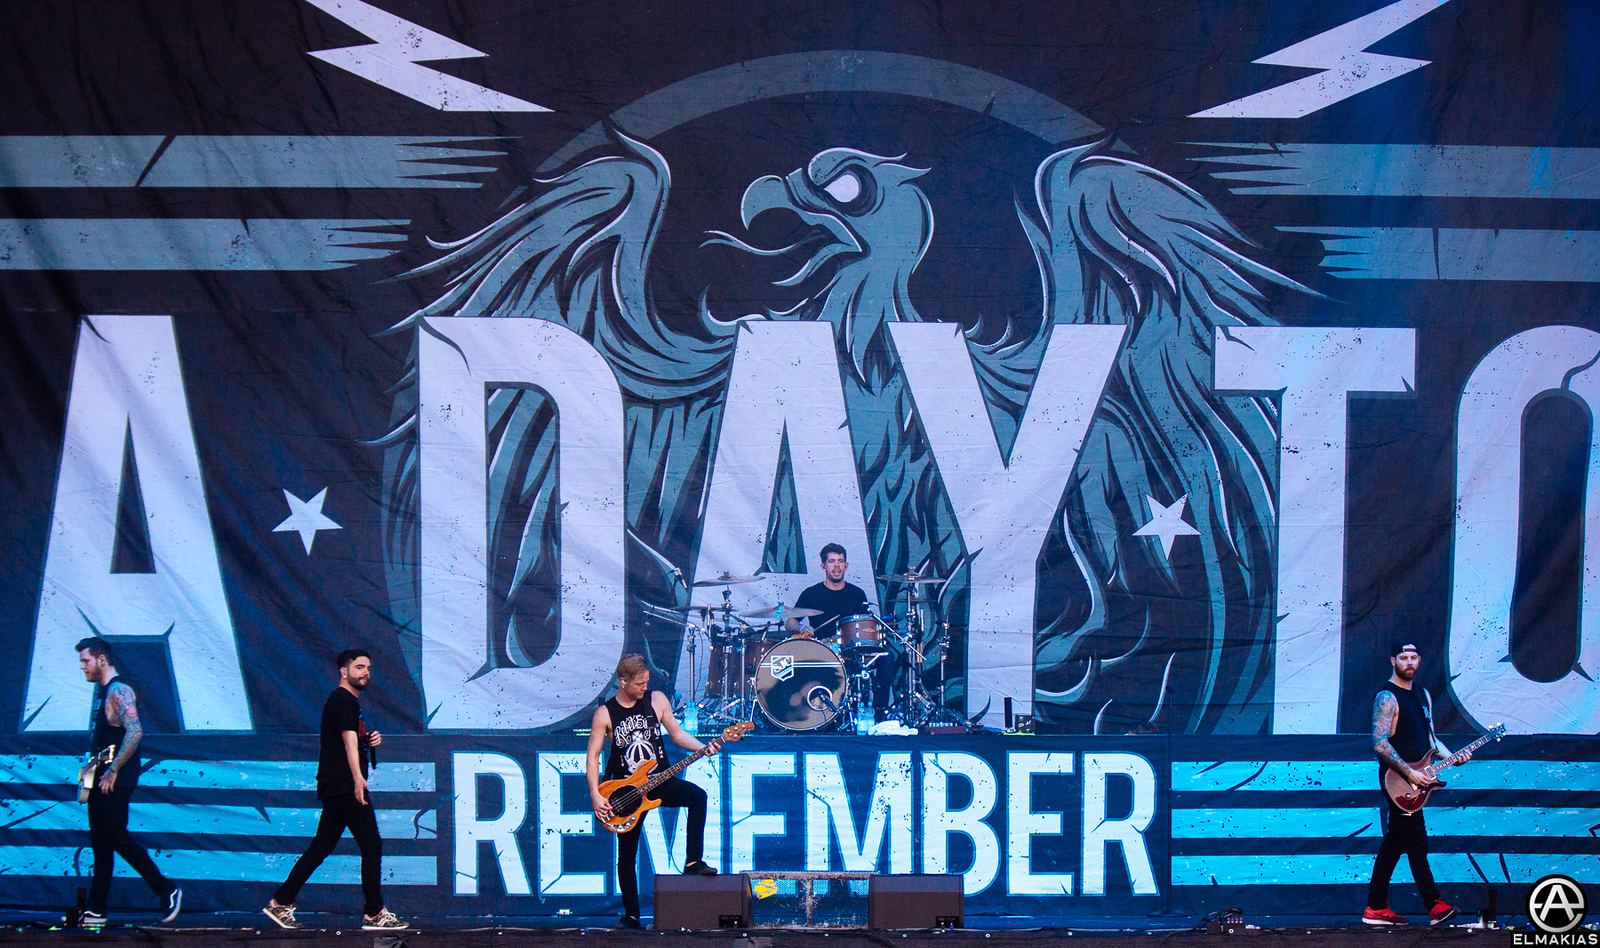 A Day To Remember live at Greenfield Festival in Interlaken, Switzerland